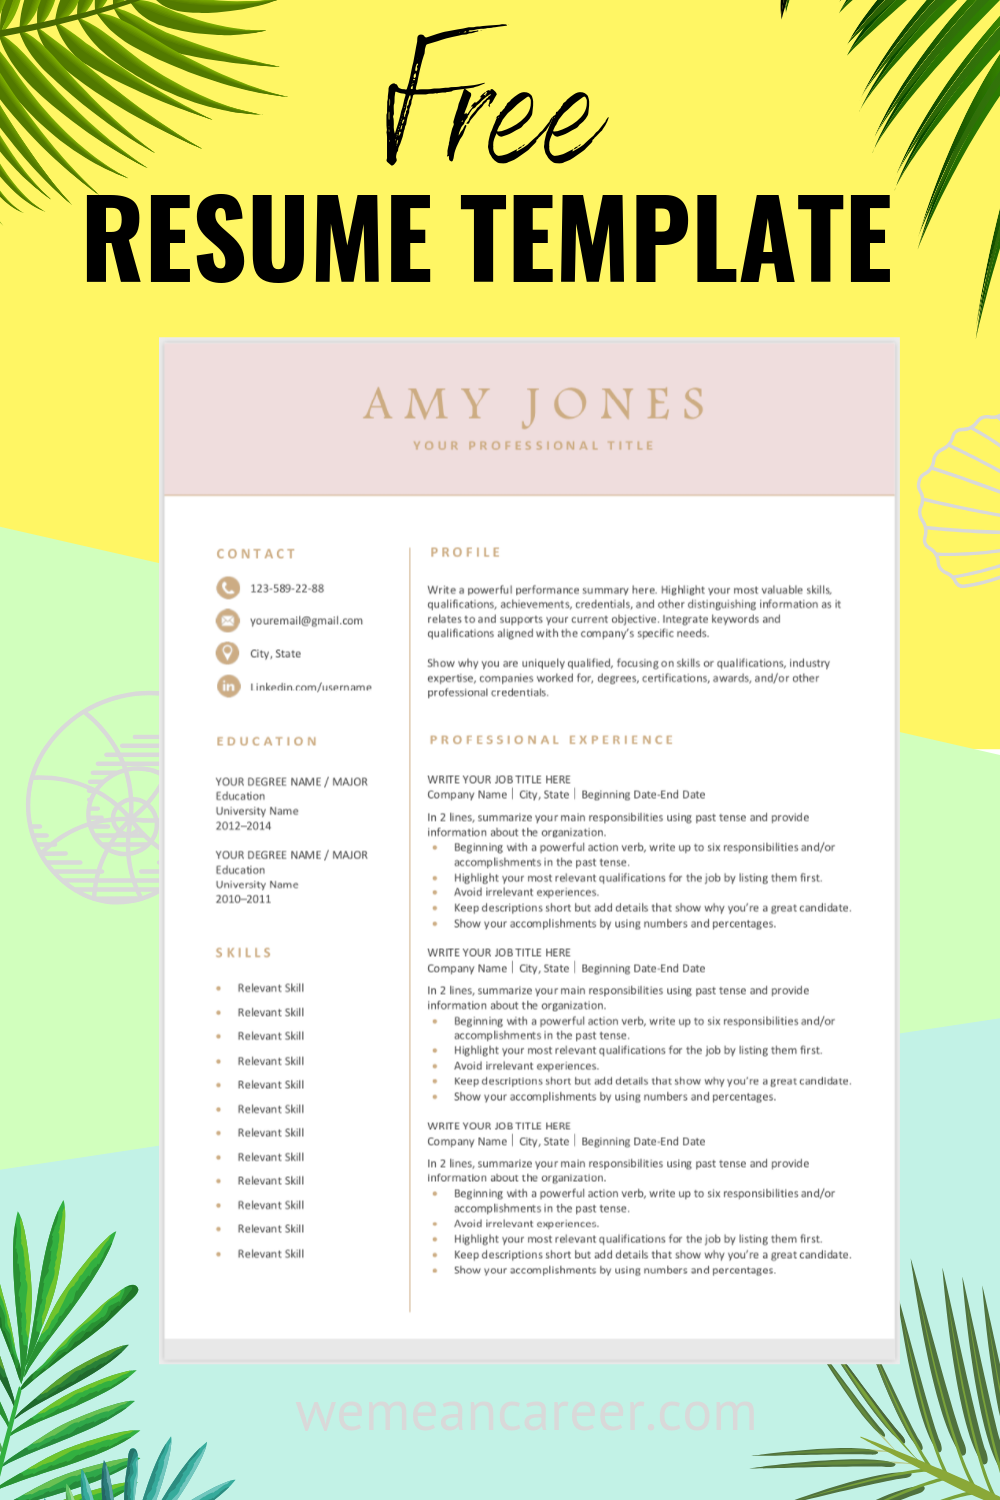 looking for a free  editable resume template  sign up for